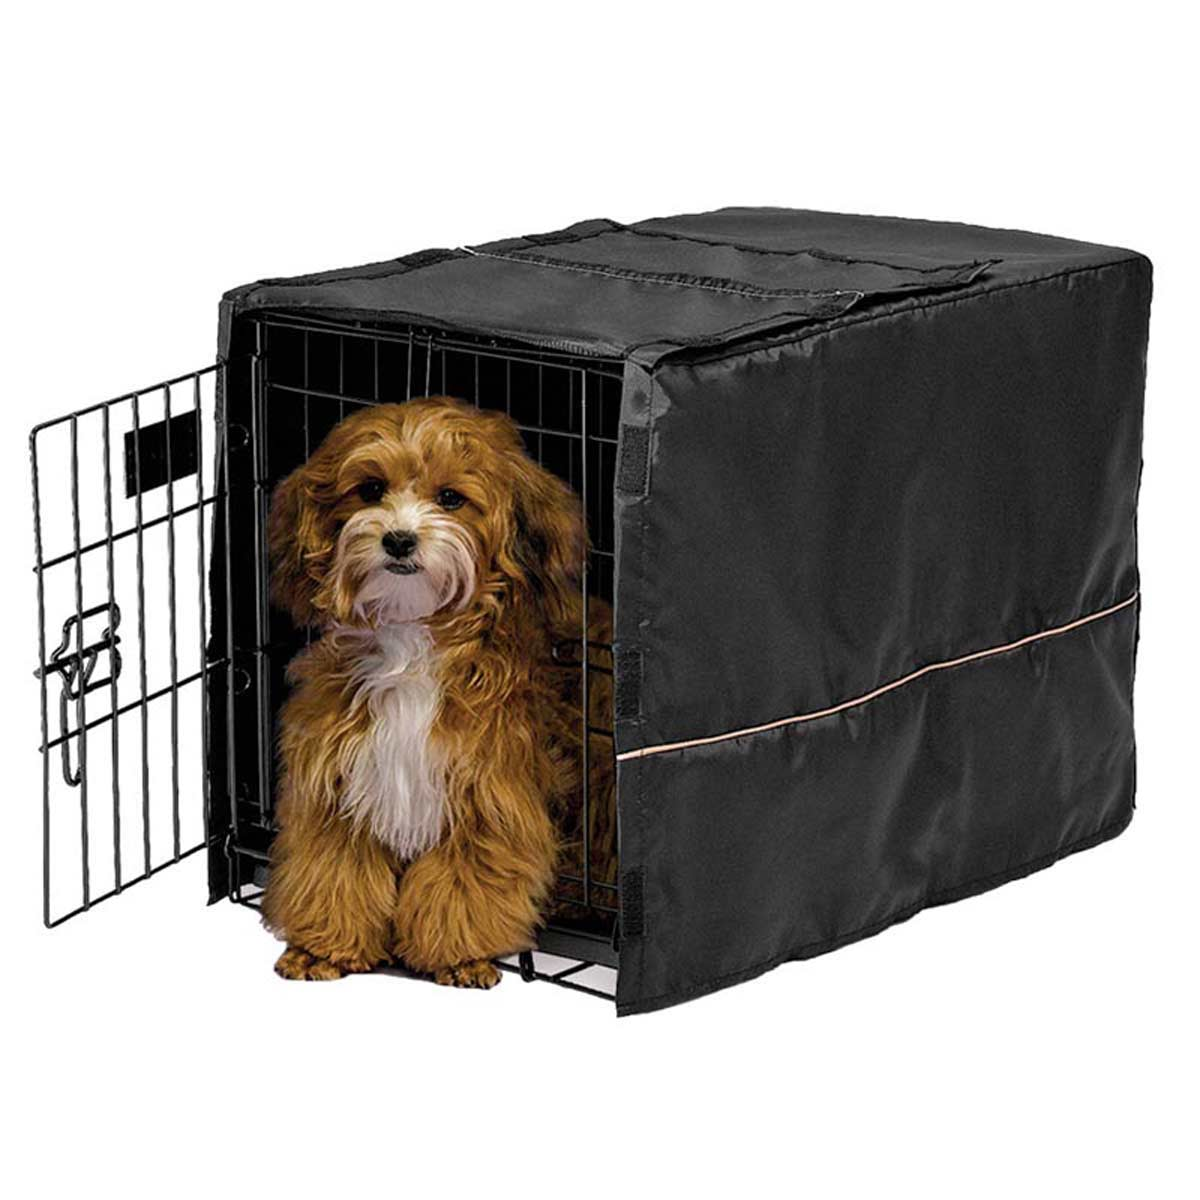 Quiet Time Crate Covers - Fits 22 inch Crates